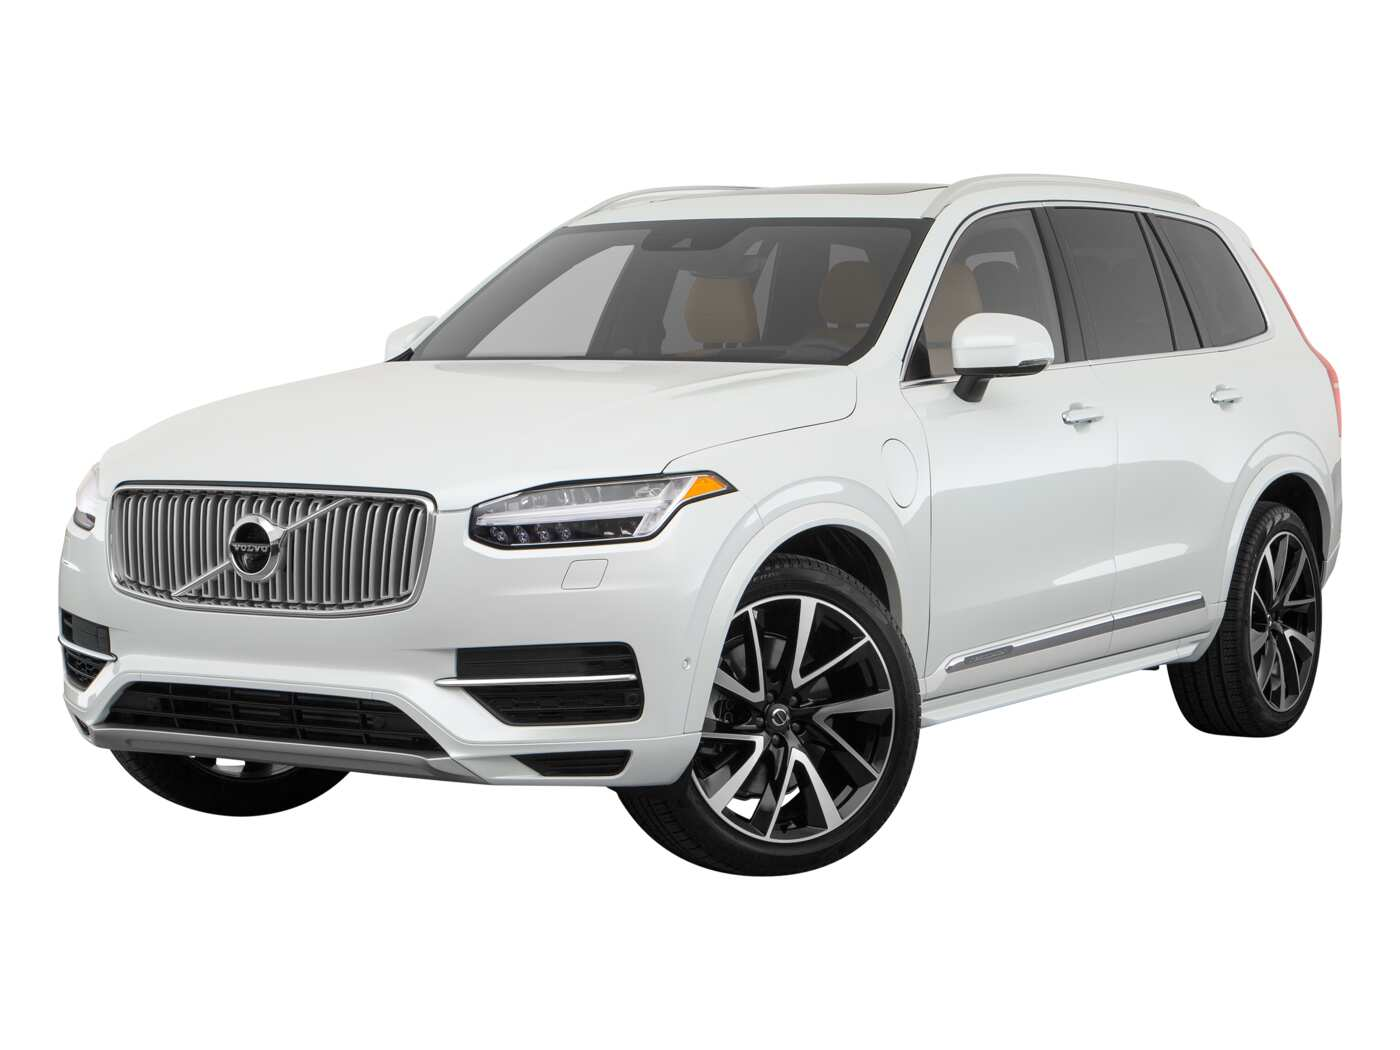 2020 Volvo XC90 T8 eAWD Plug-In Hybrid Inscription 6 Passenger